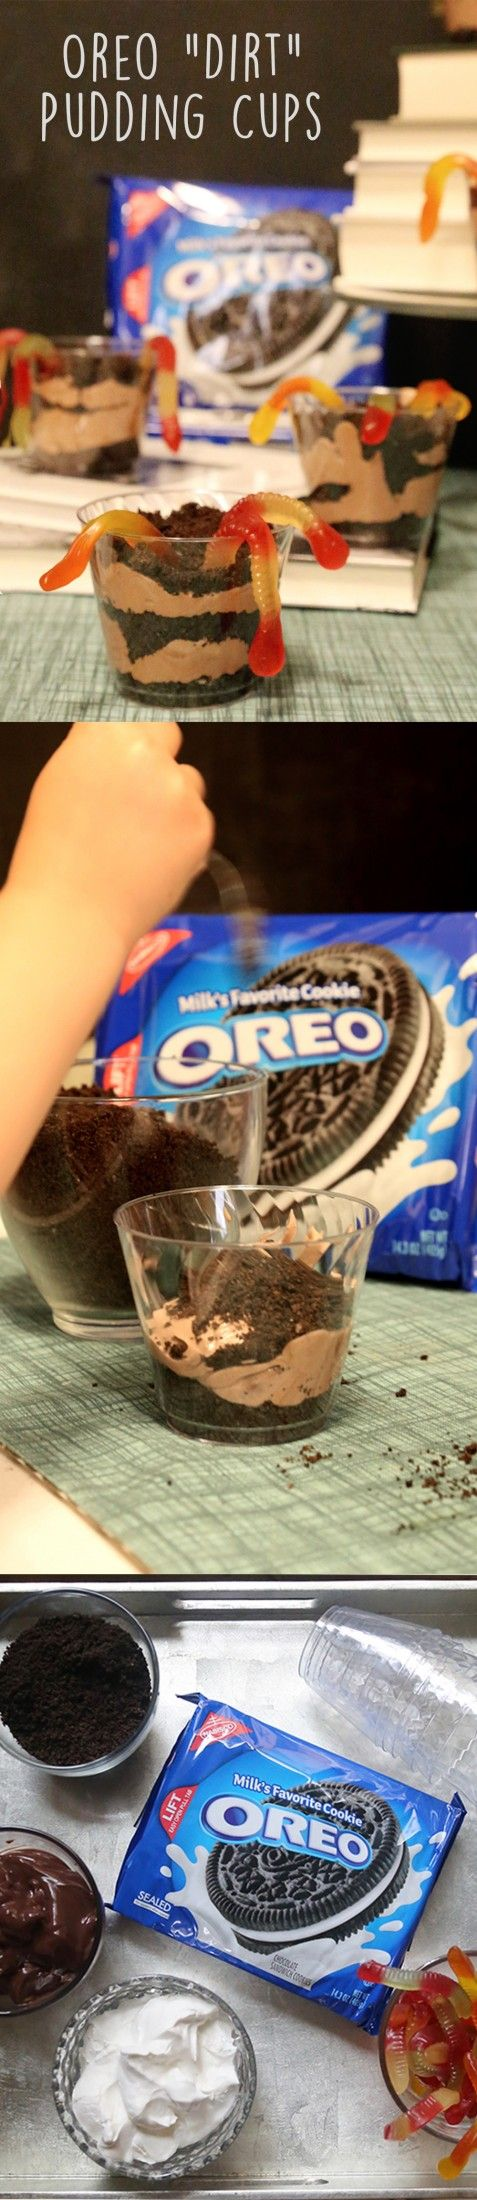 """[Sp] Let your kids play in the """"dirt"""" with these OREO cookie pudding cups!"""